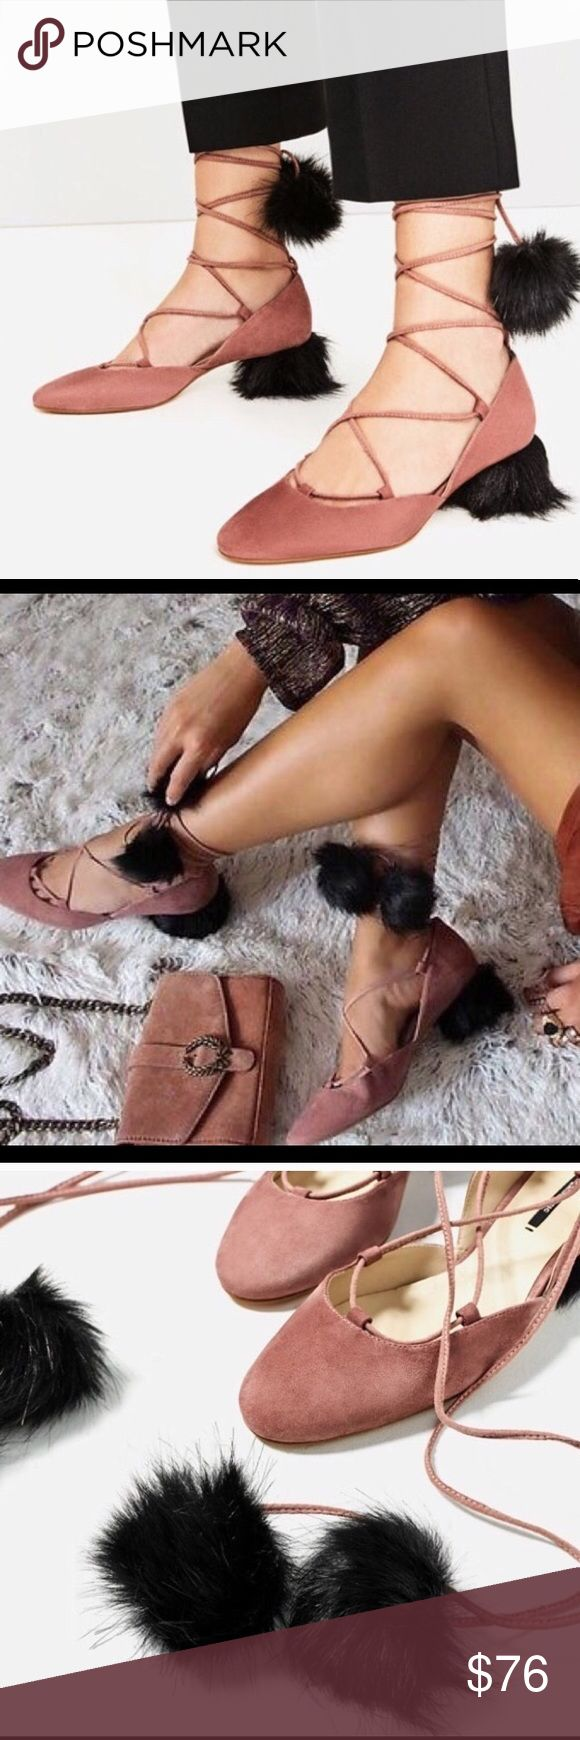 GIFT ALERT Zara Suede Sandals with Pom Pom Suede lace up tasseled mid heel shoes! Pink medium sided heel shoe.  Heel lined with synthetic fur. Laces with pompom!!! Rounded toe! Ankle strap fastening!  NWT and box!!!Perfect gift idea or holiday shoe! Sold out!! Zara Shoes Sandals